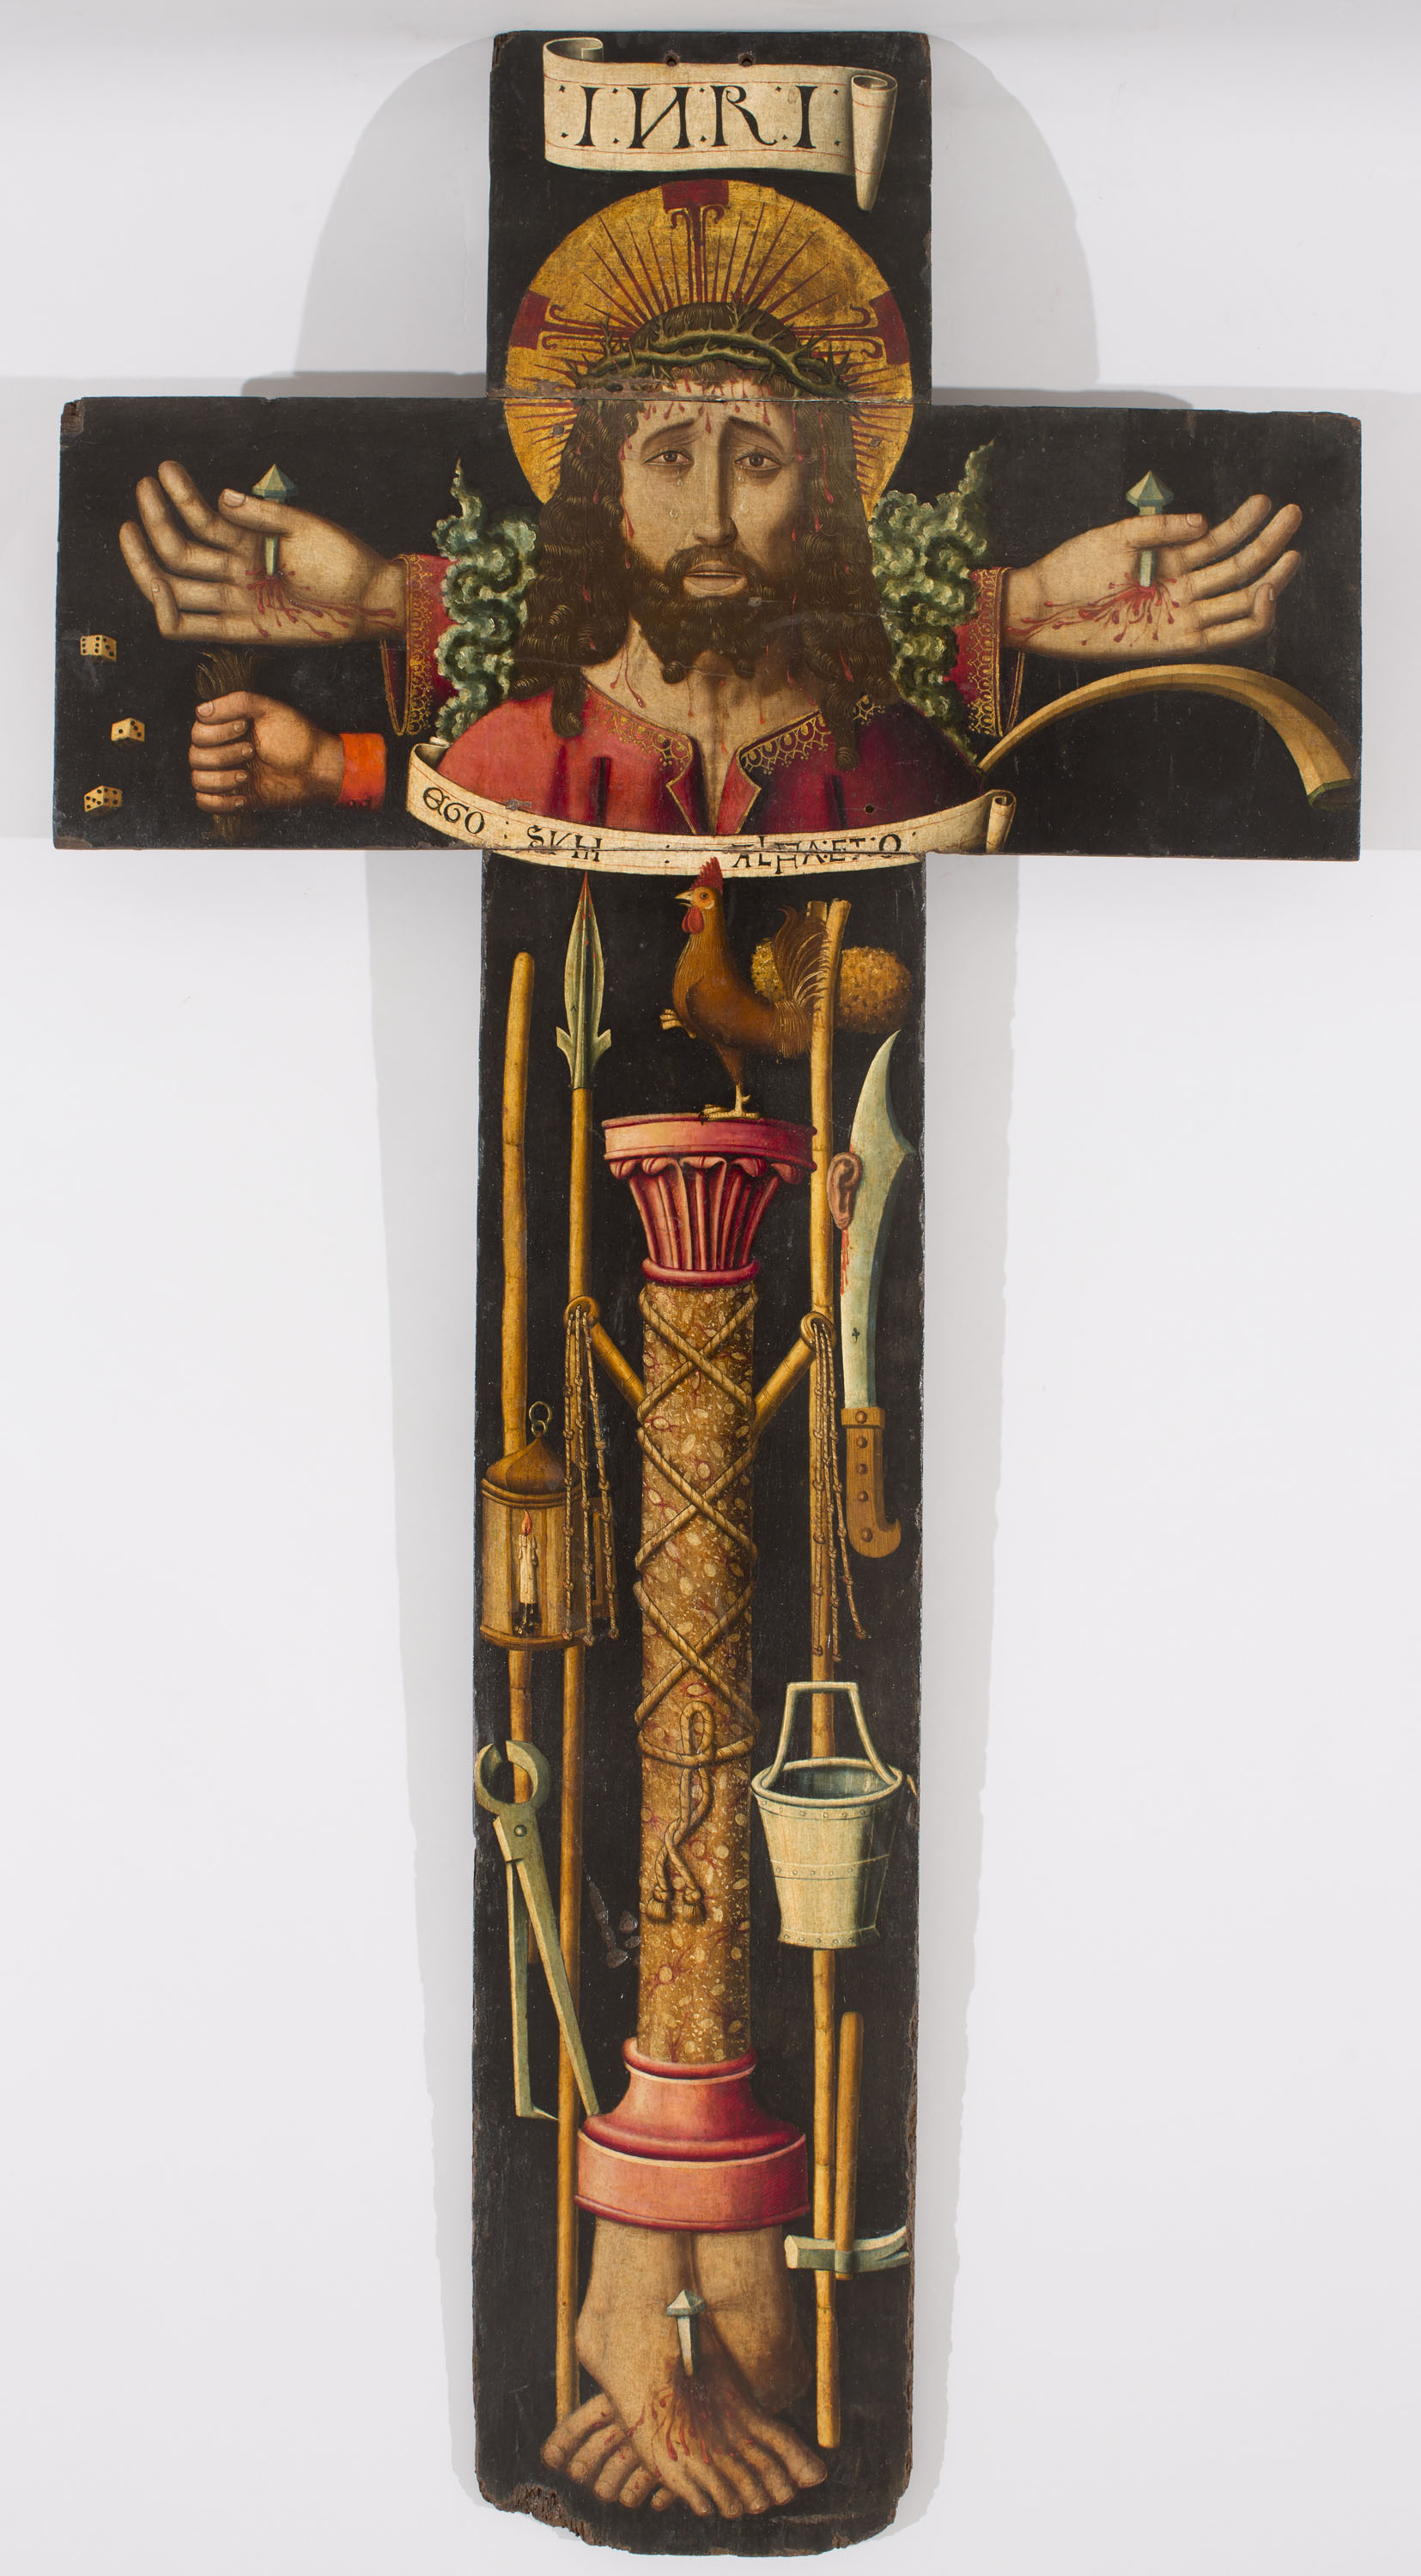 Martin Bernat, Processional cross with the bust of Christ and the Arma Christi, 1477-1505